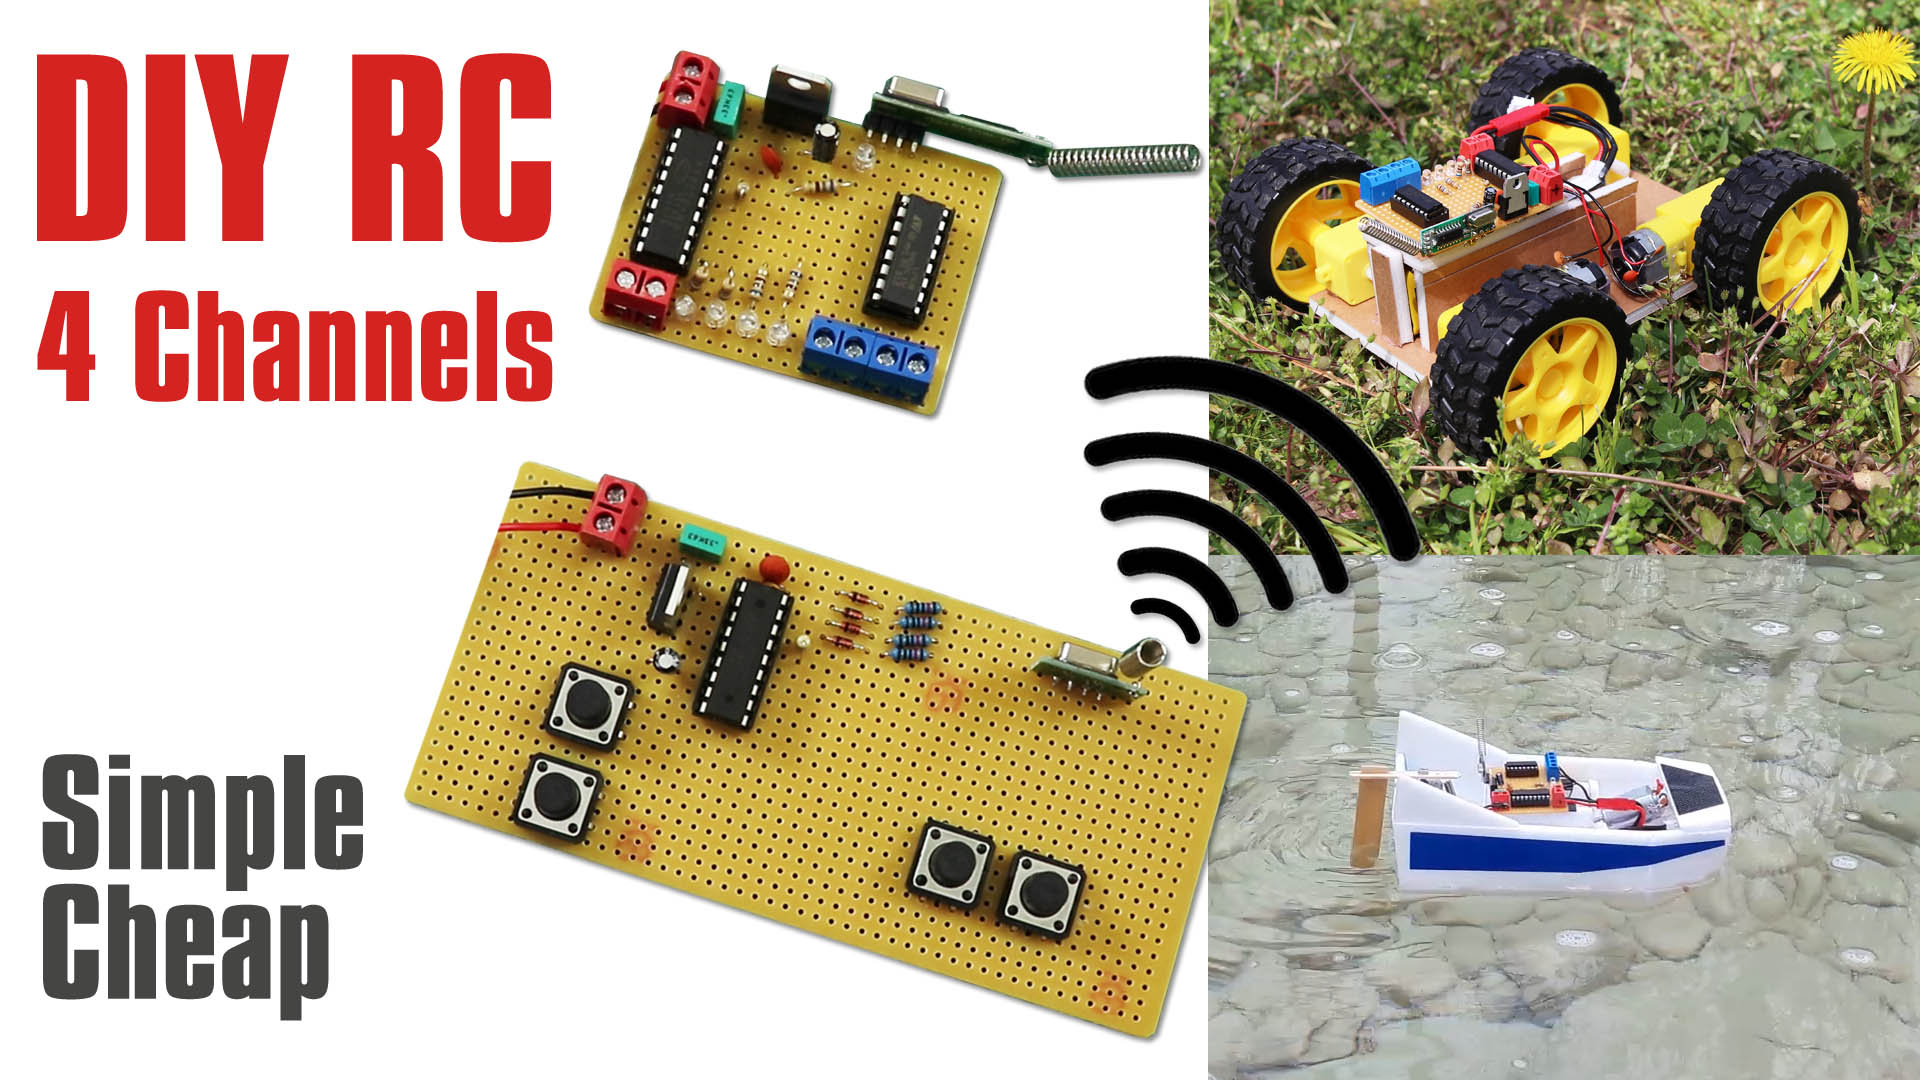 Simple and Cheap, 4 Channel Remote Control Construction for RC Vehicles. DIY RC